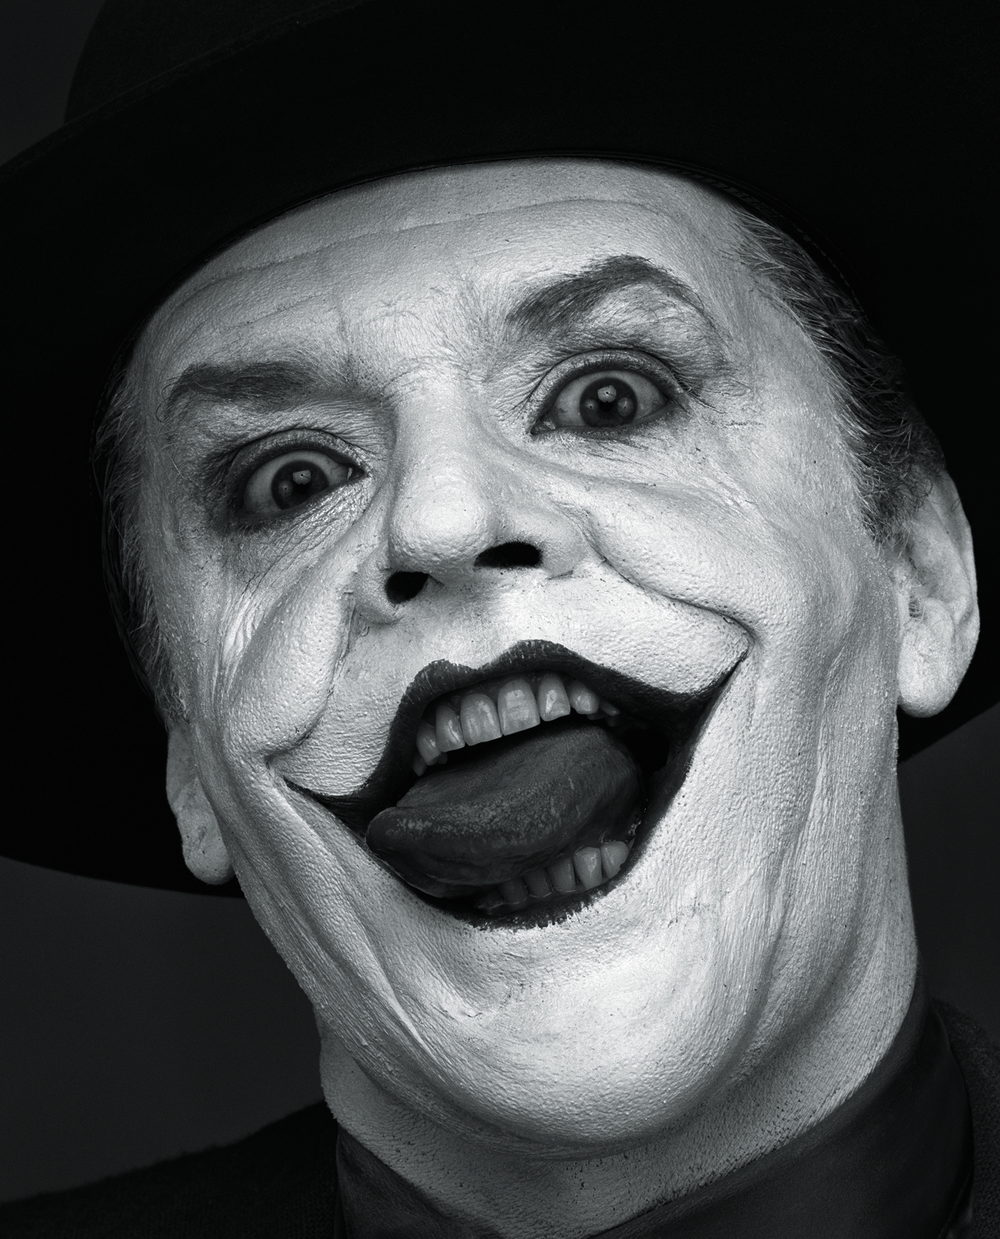 © Photo London, published by teNeues,   www.teneues.com  . Jack Nicholson III, London 1988, Photo © Herb Ritts/Camera Work